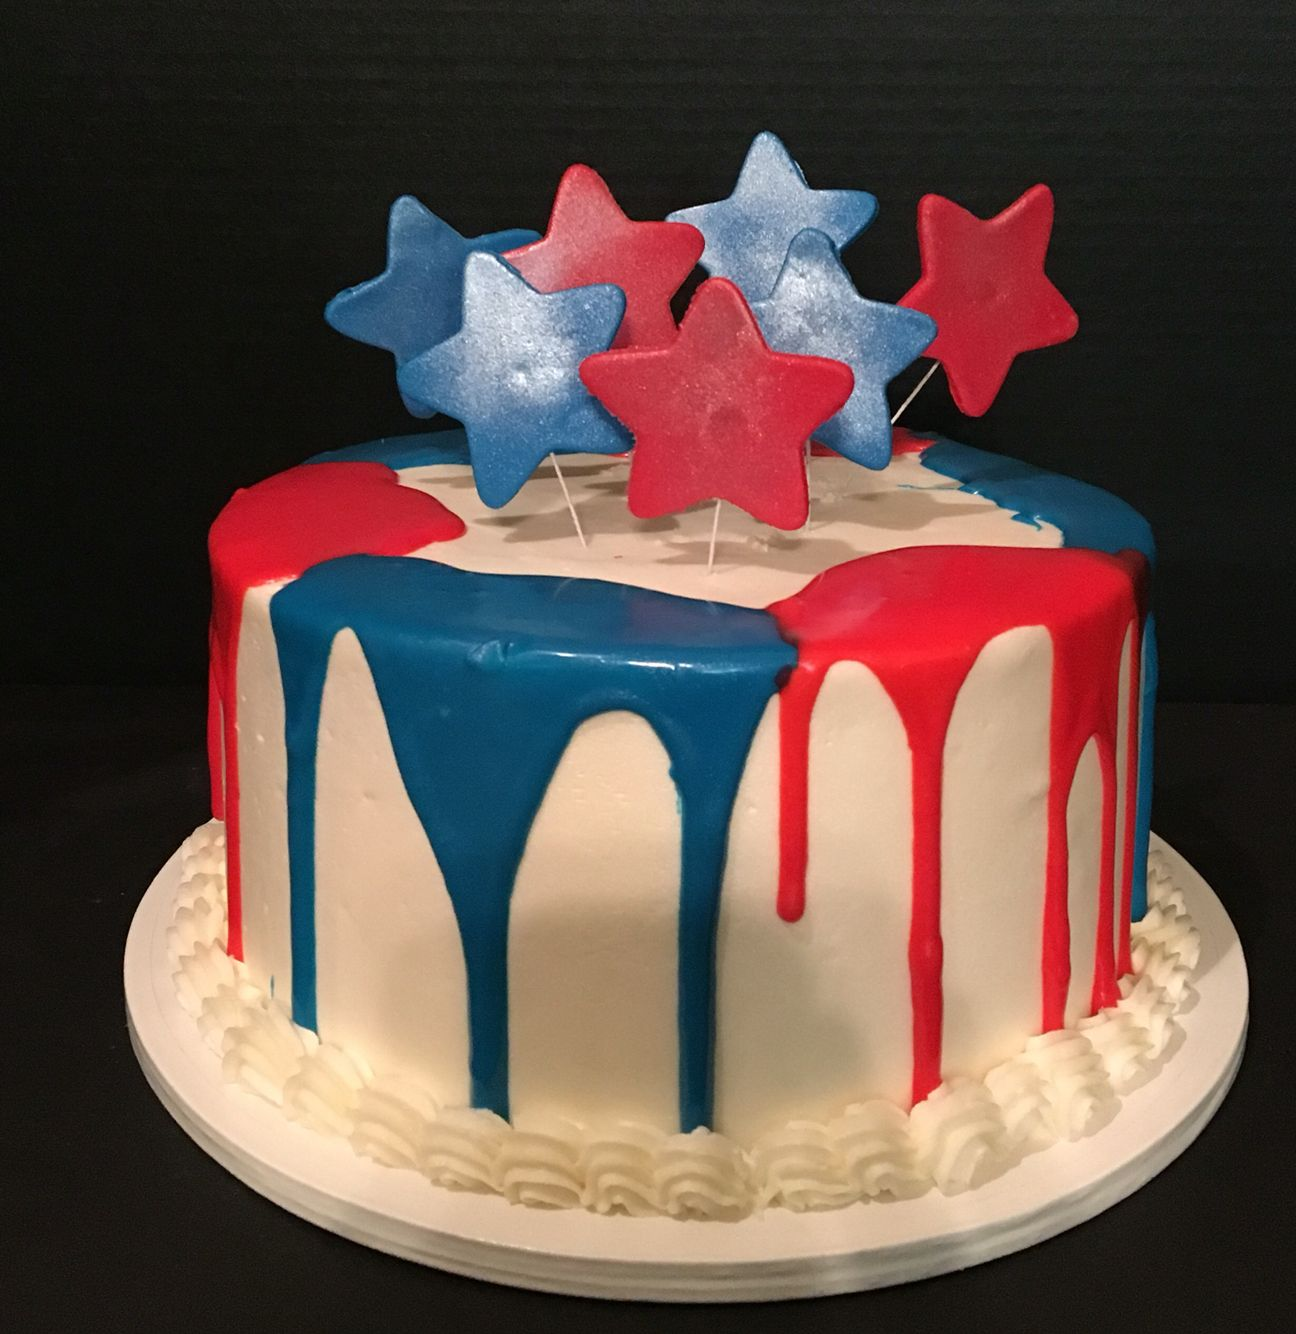 Red White And Blue Drip Cake Blue Birthday Cakes Blue Drip